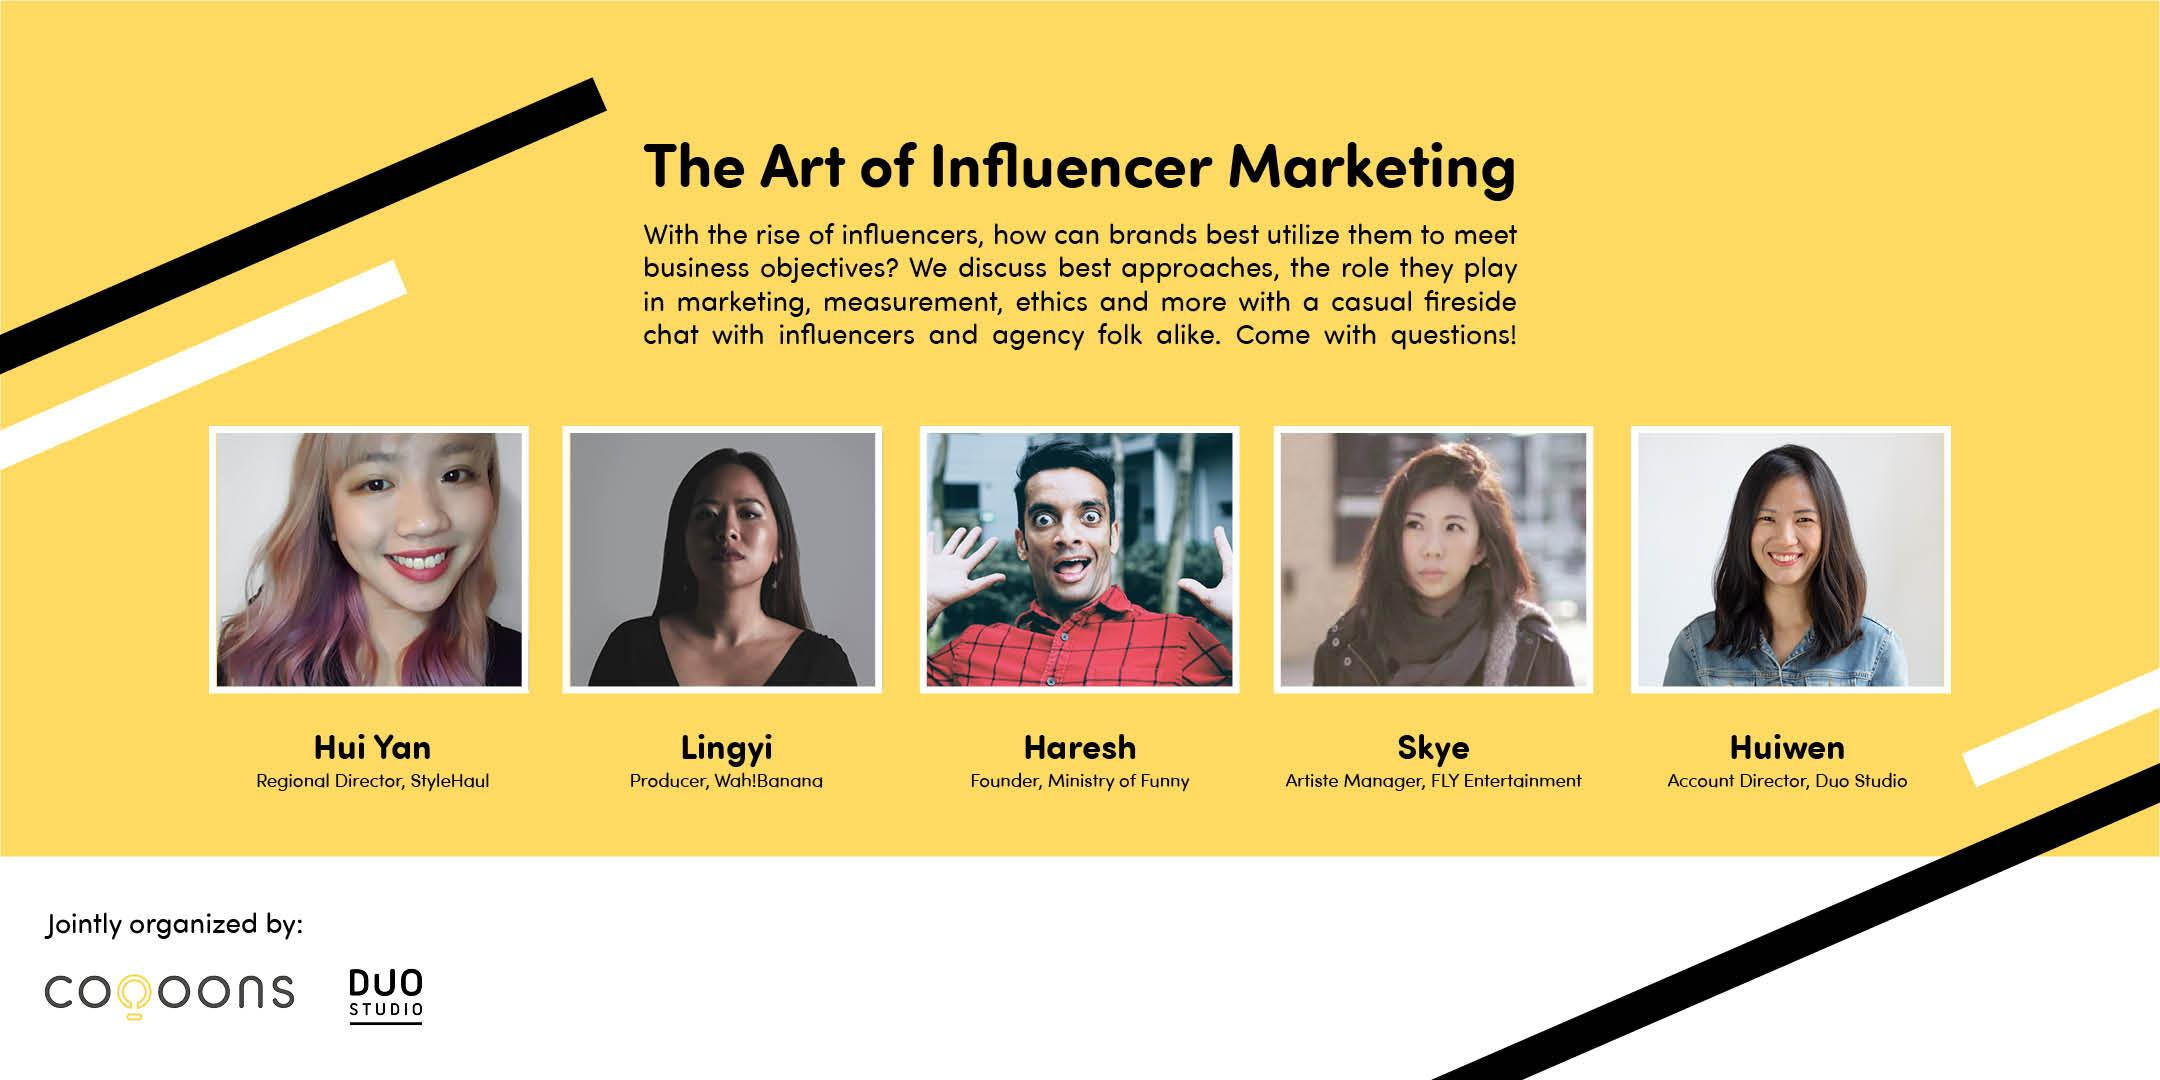 The Art of Influencer Marketing